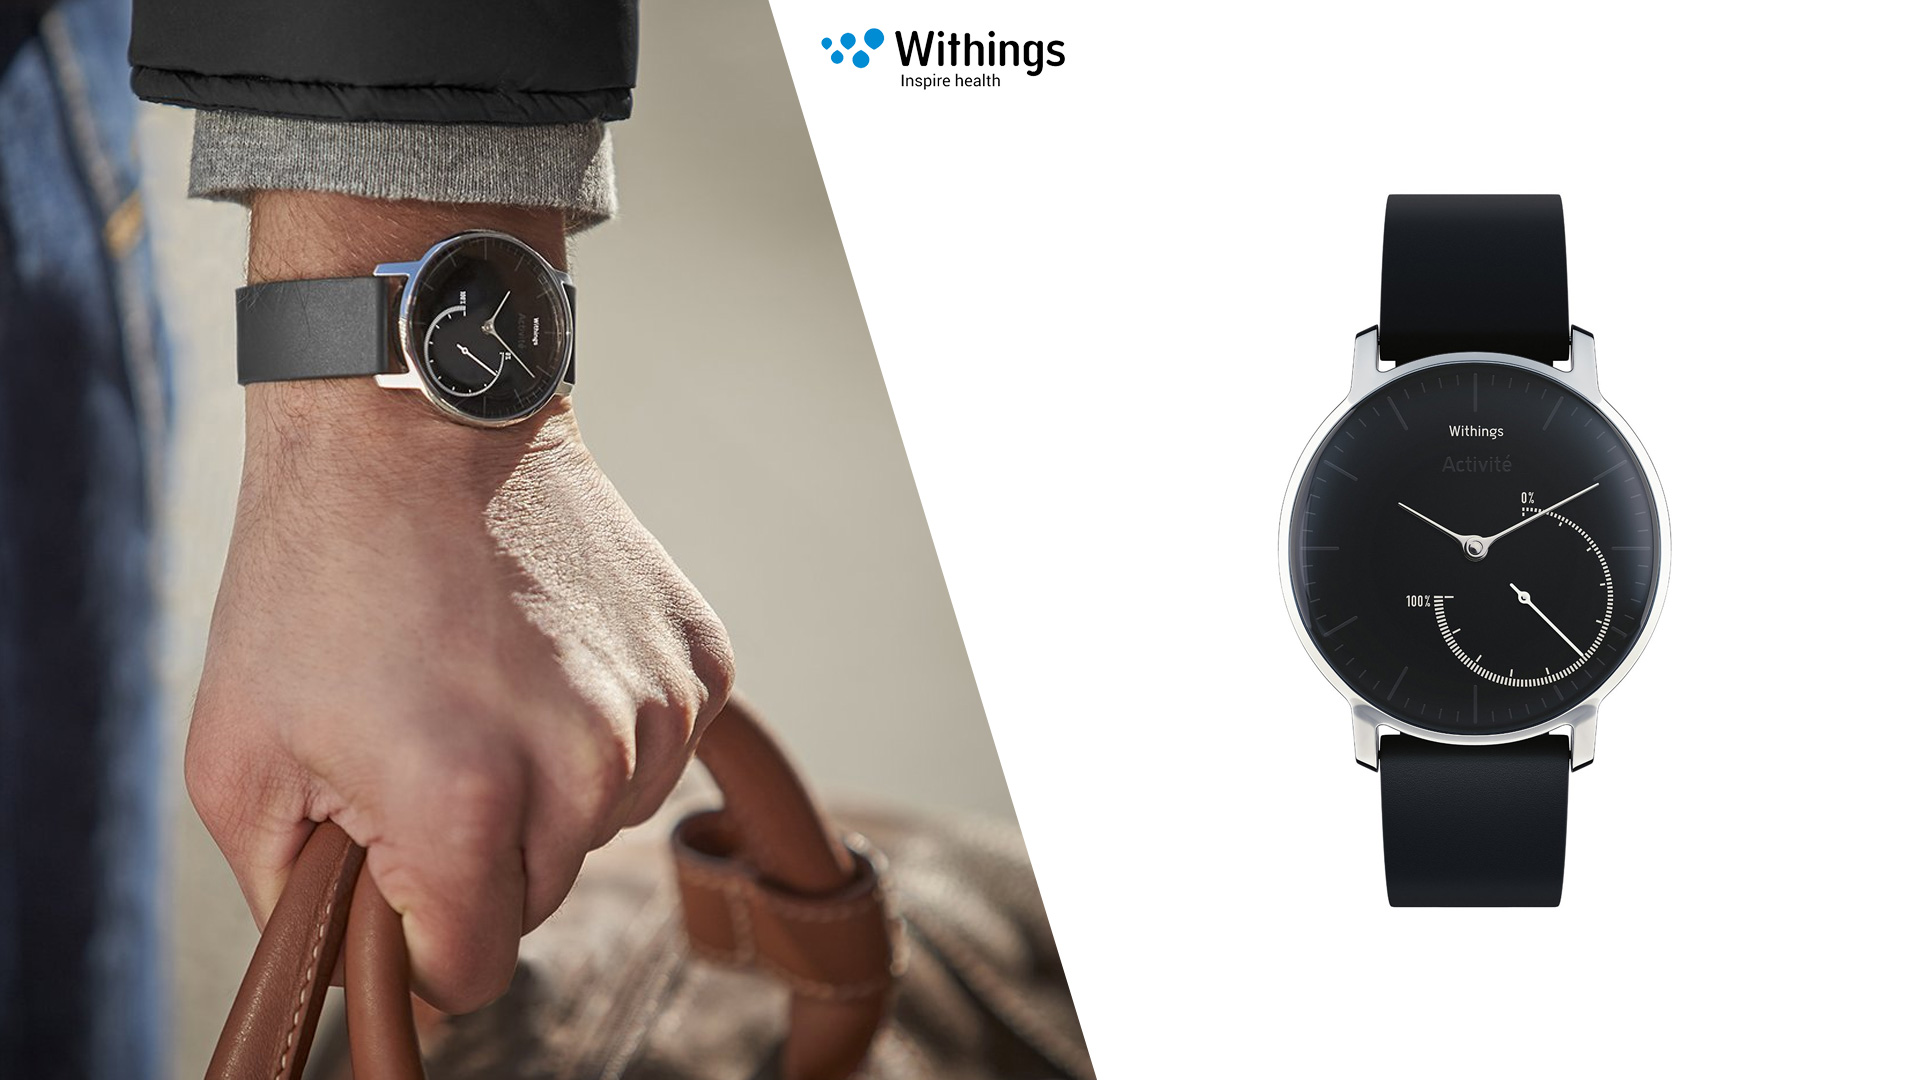 withings smartwatch montre